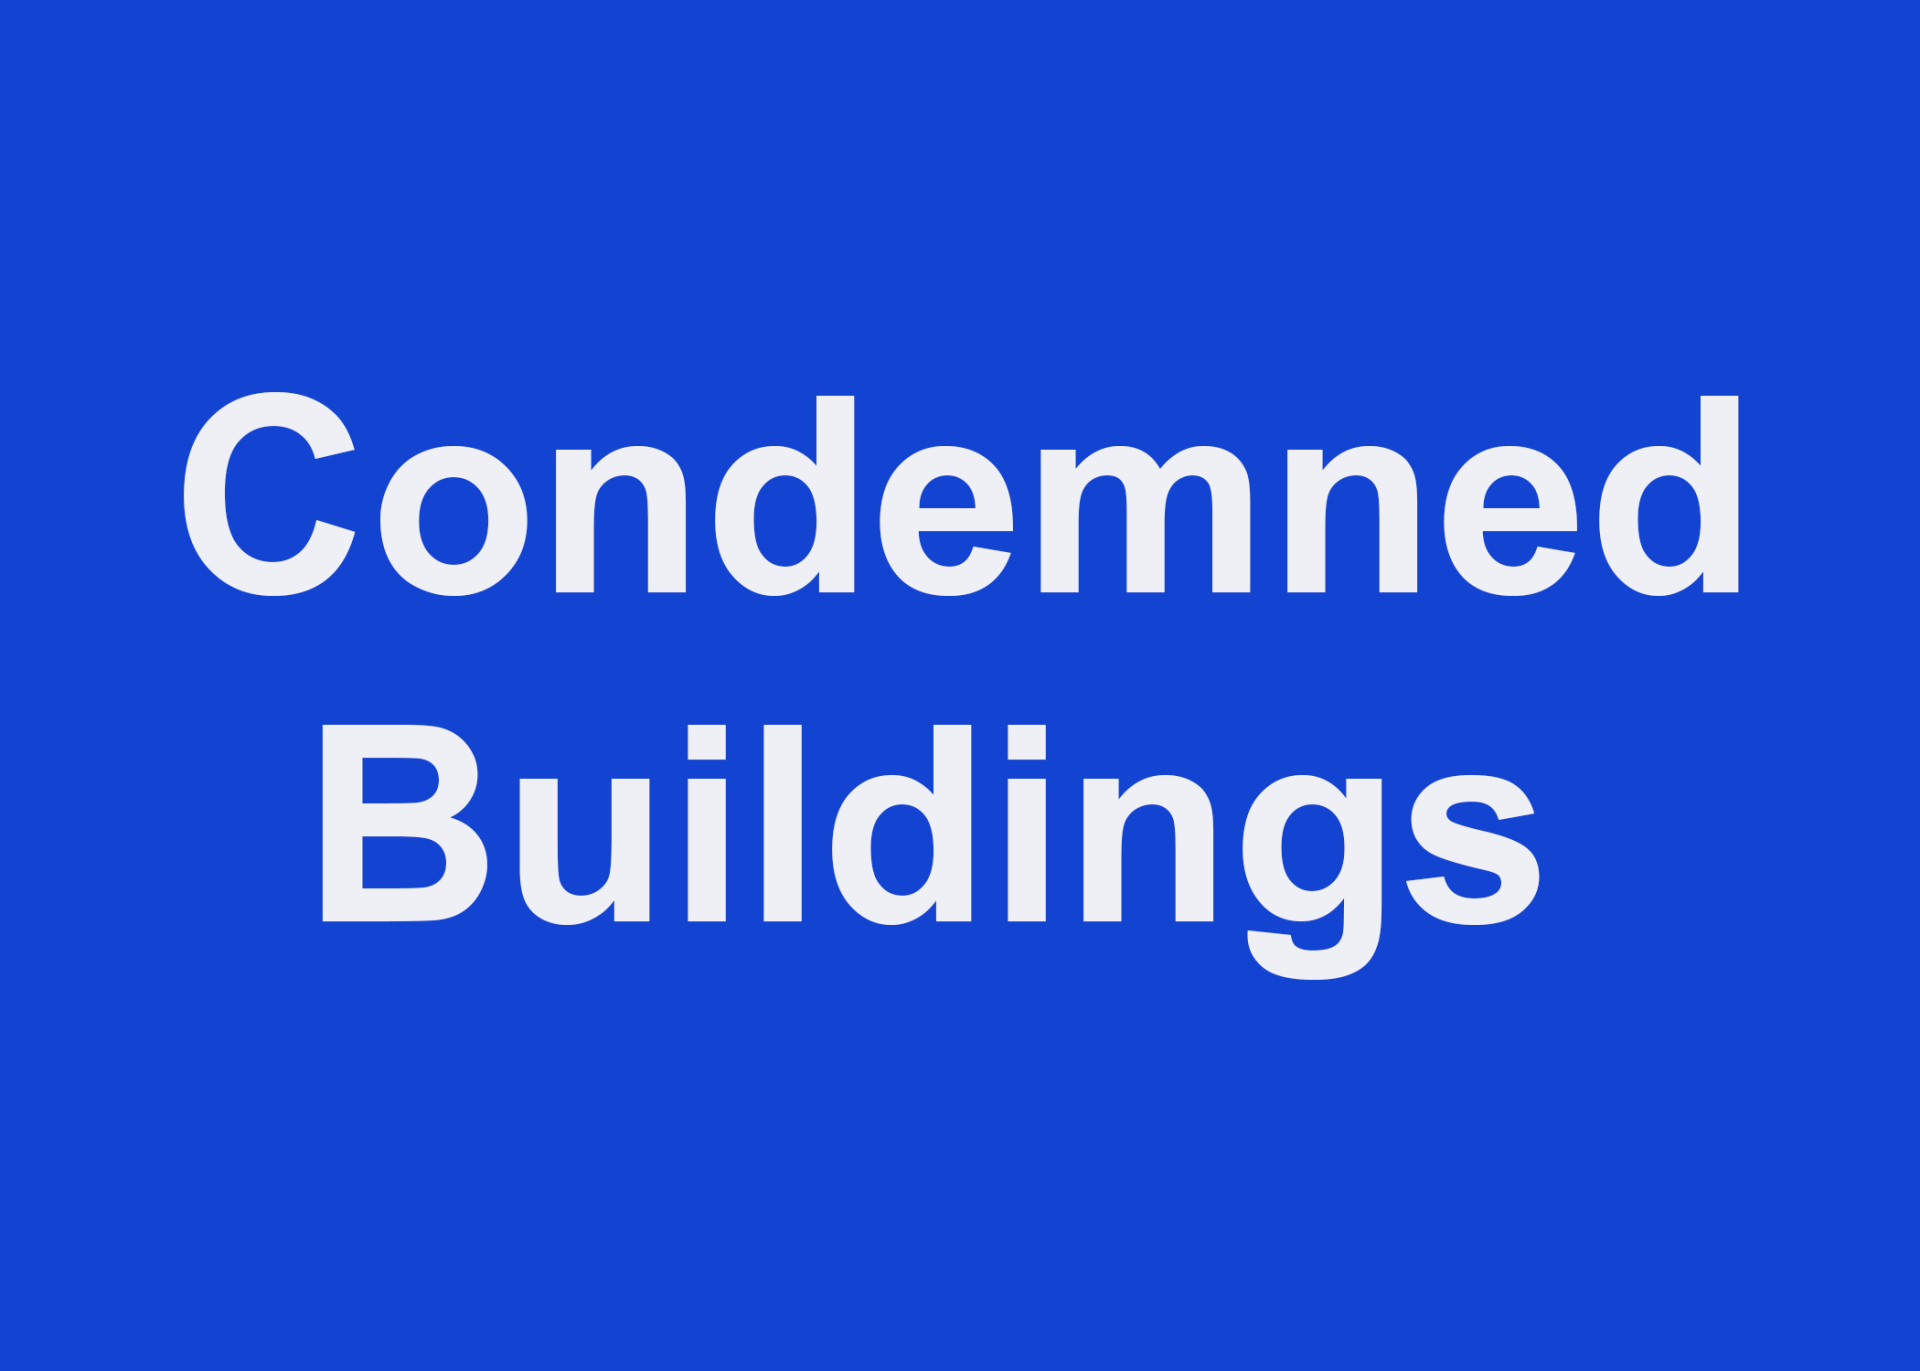 condemned buildings